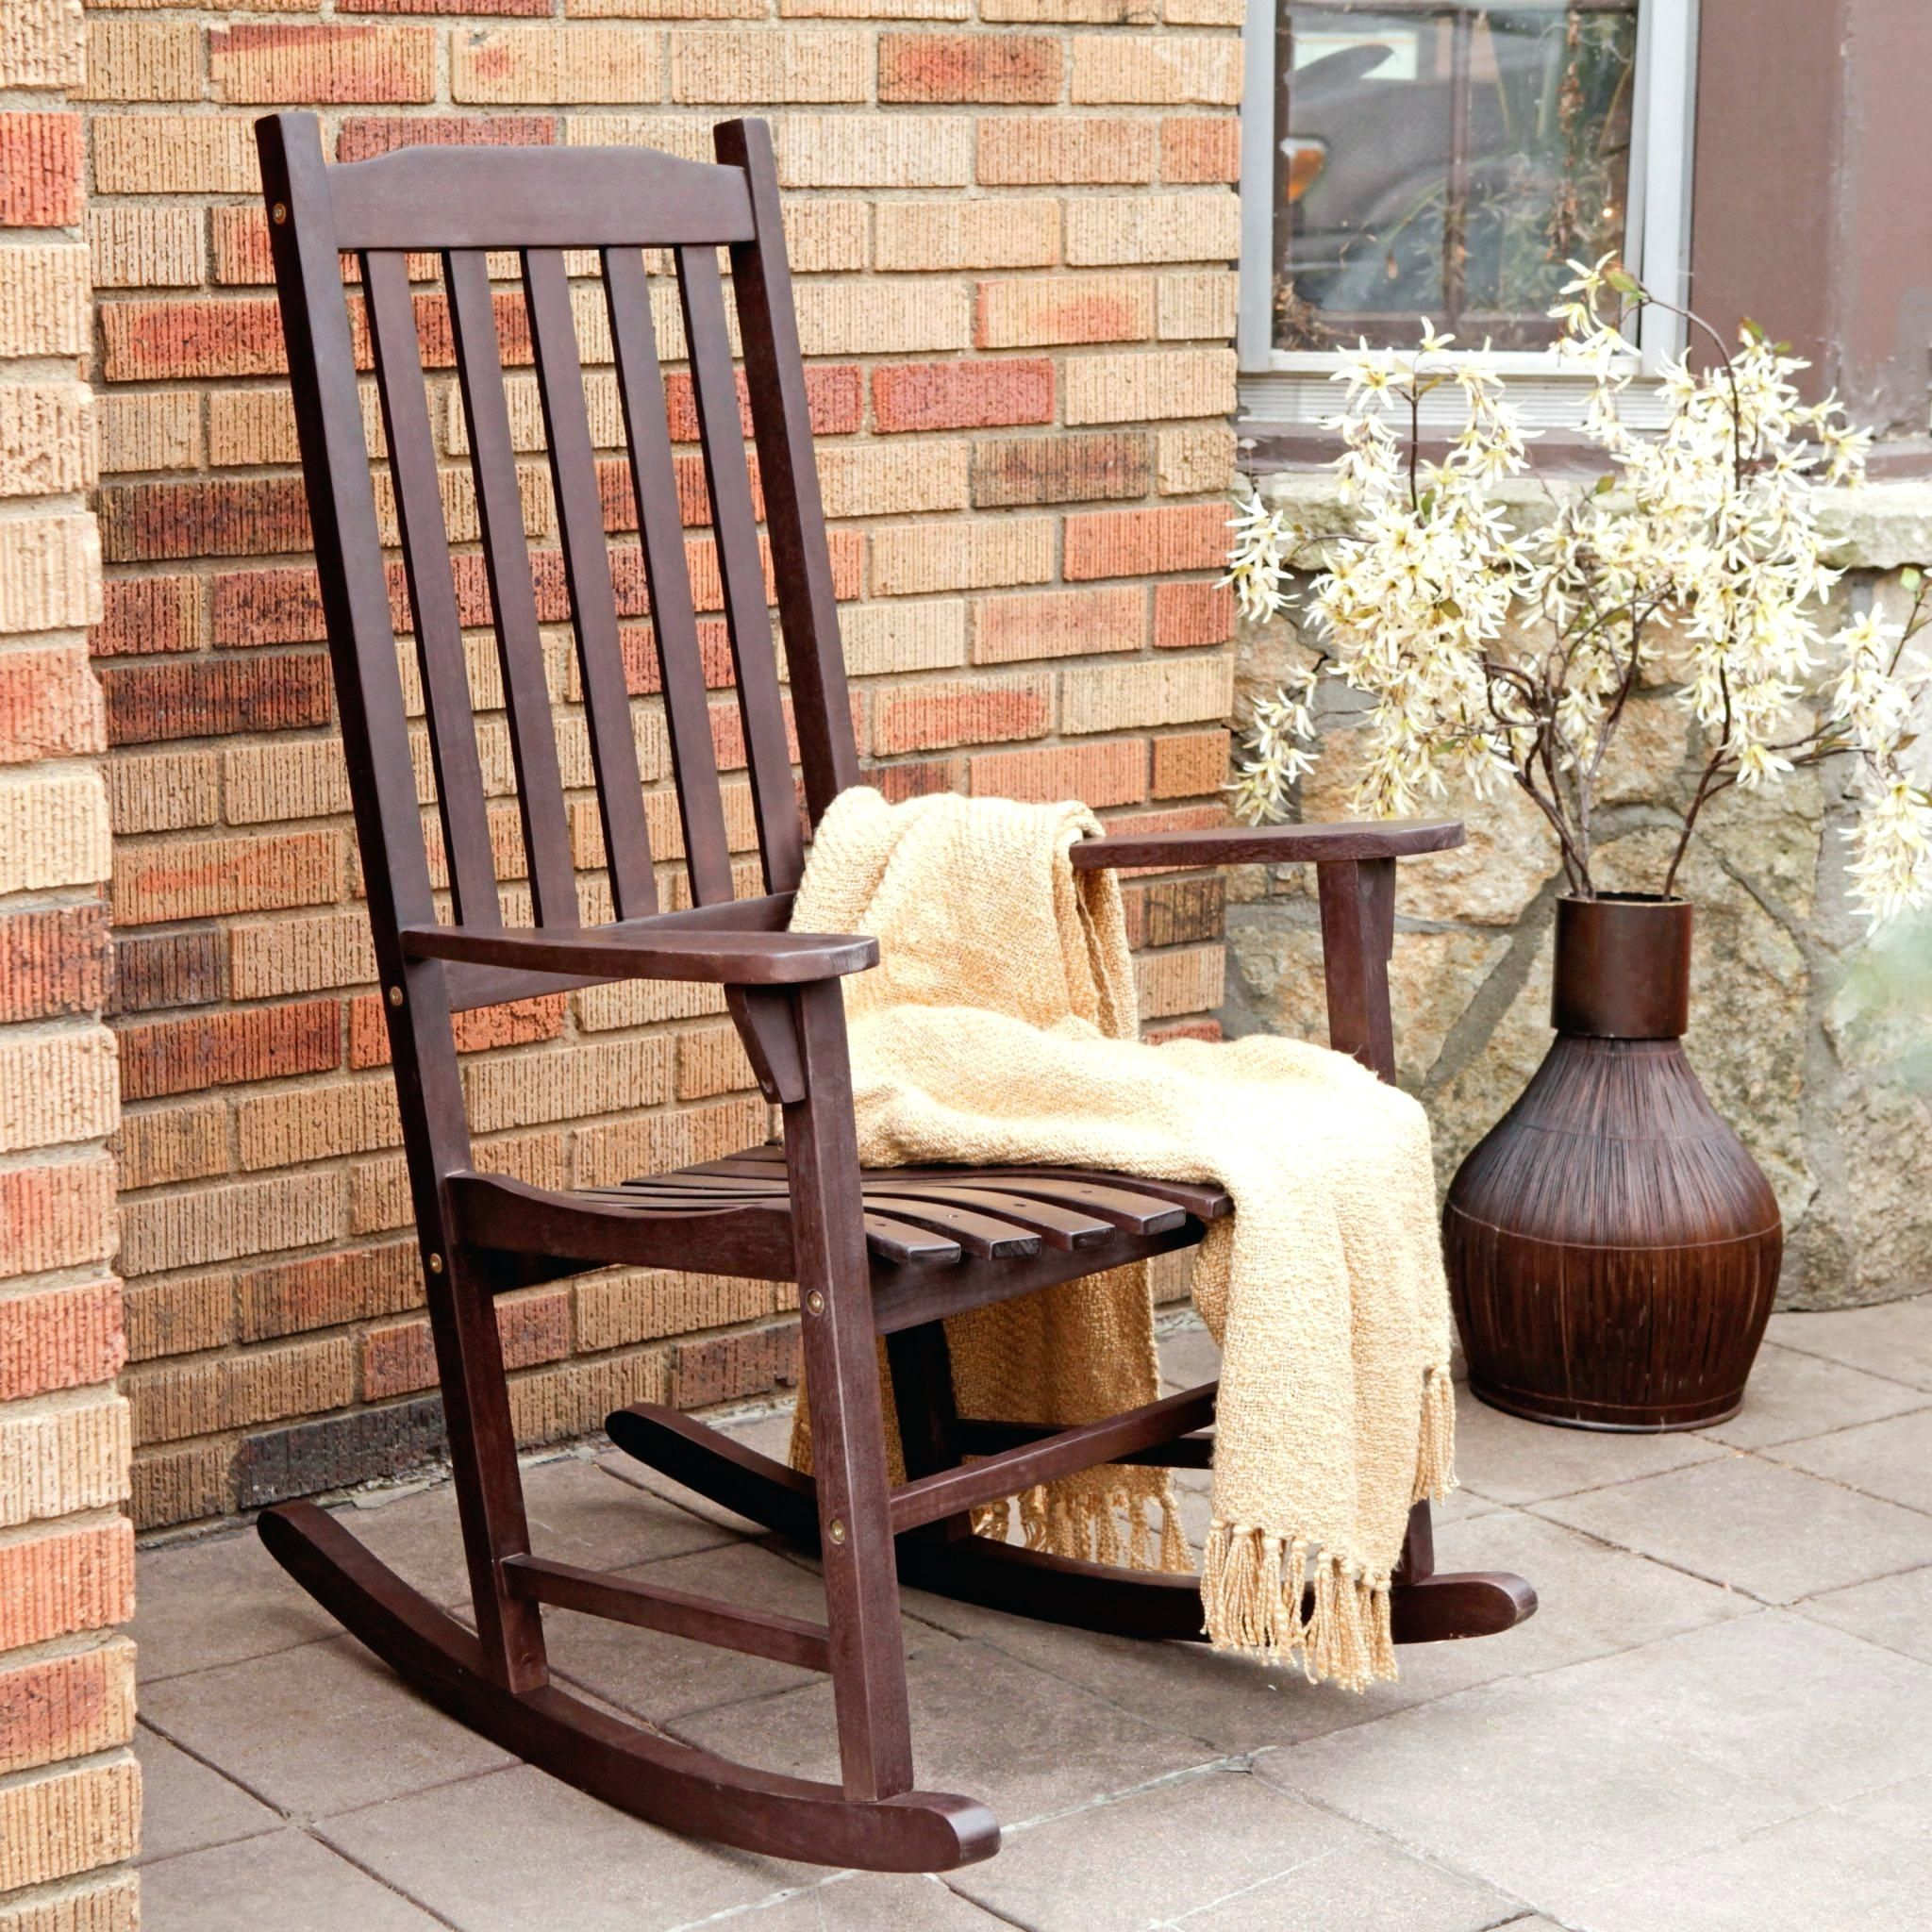 Cracker barrel chair covers rocking chair porch outdoor